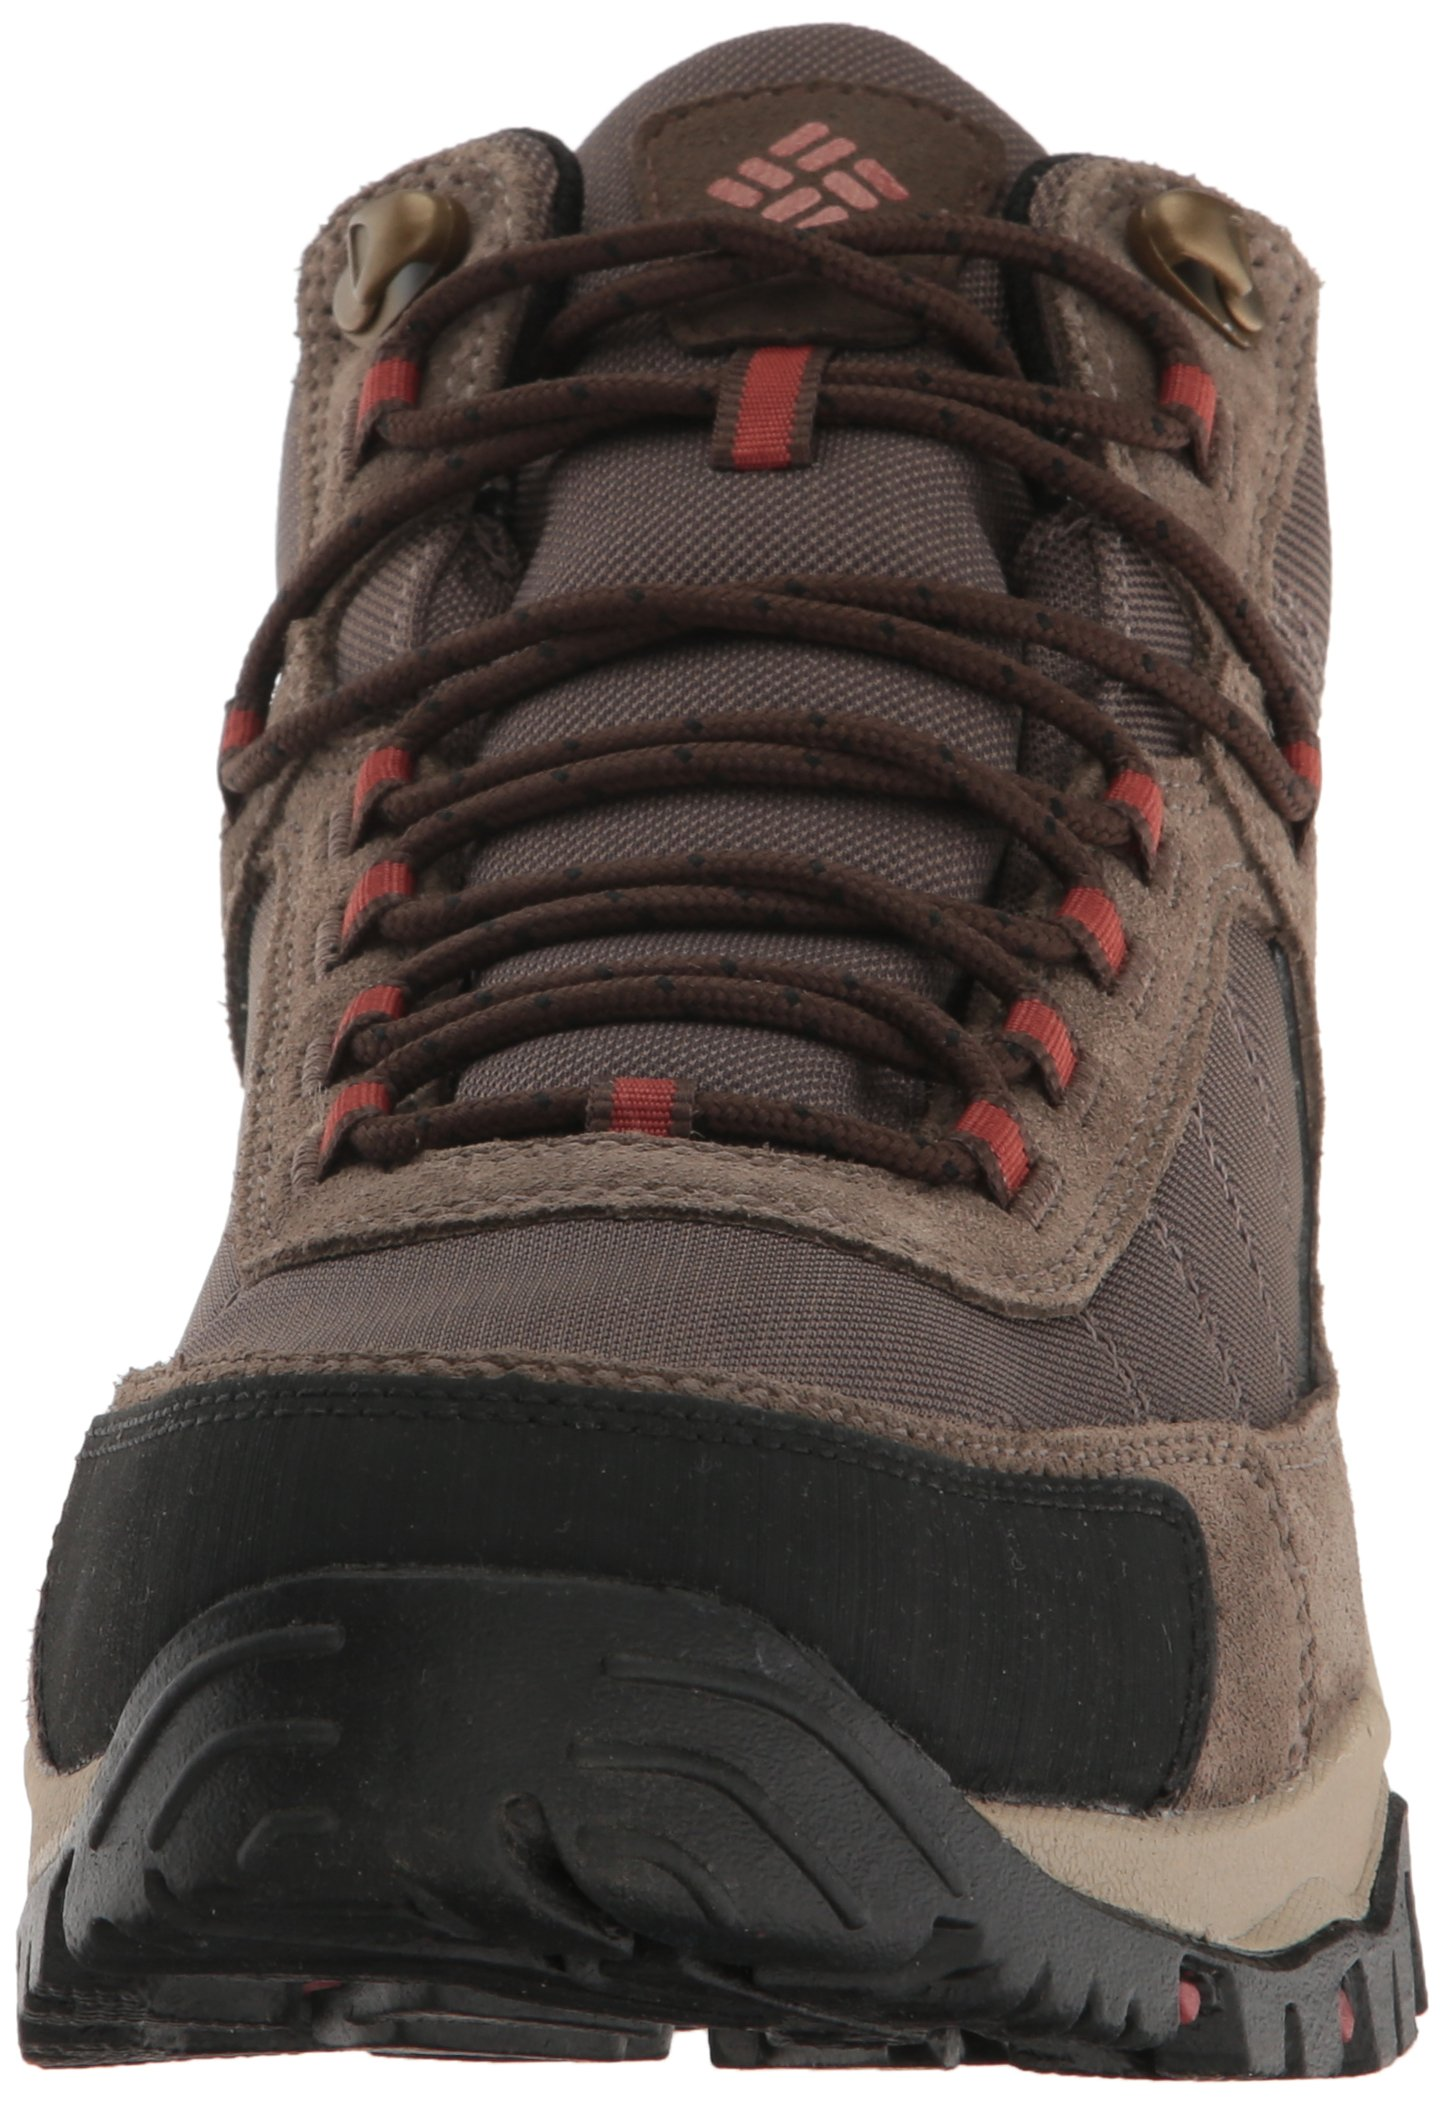 Columbia Men's Granite Ridge Mid Waterproof Boot, Breathable, Microfleece Lining